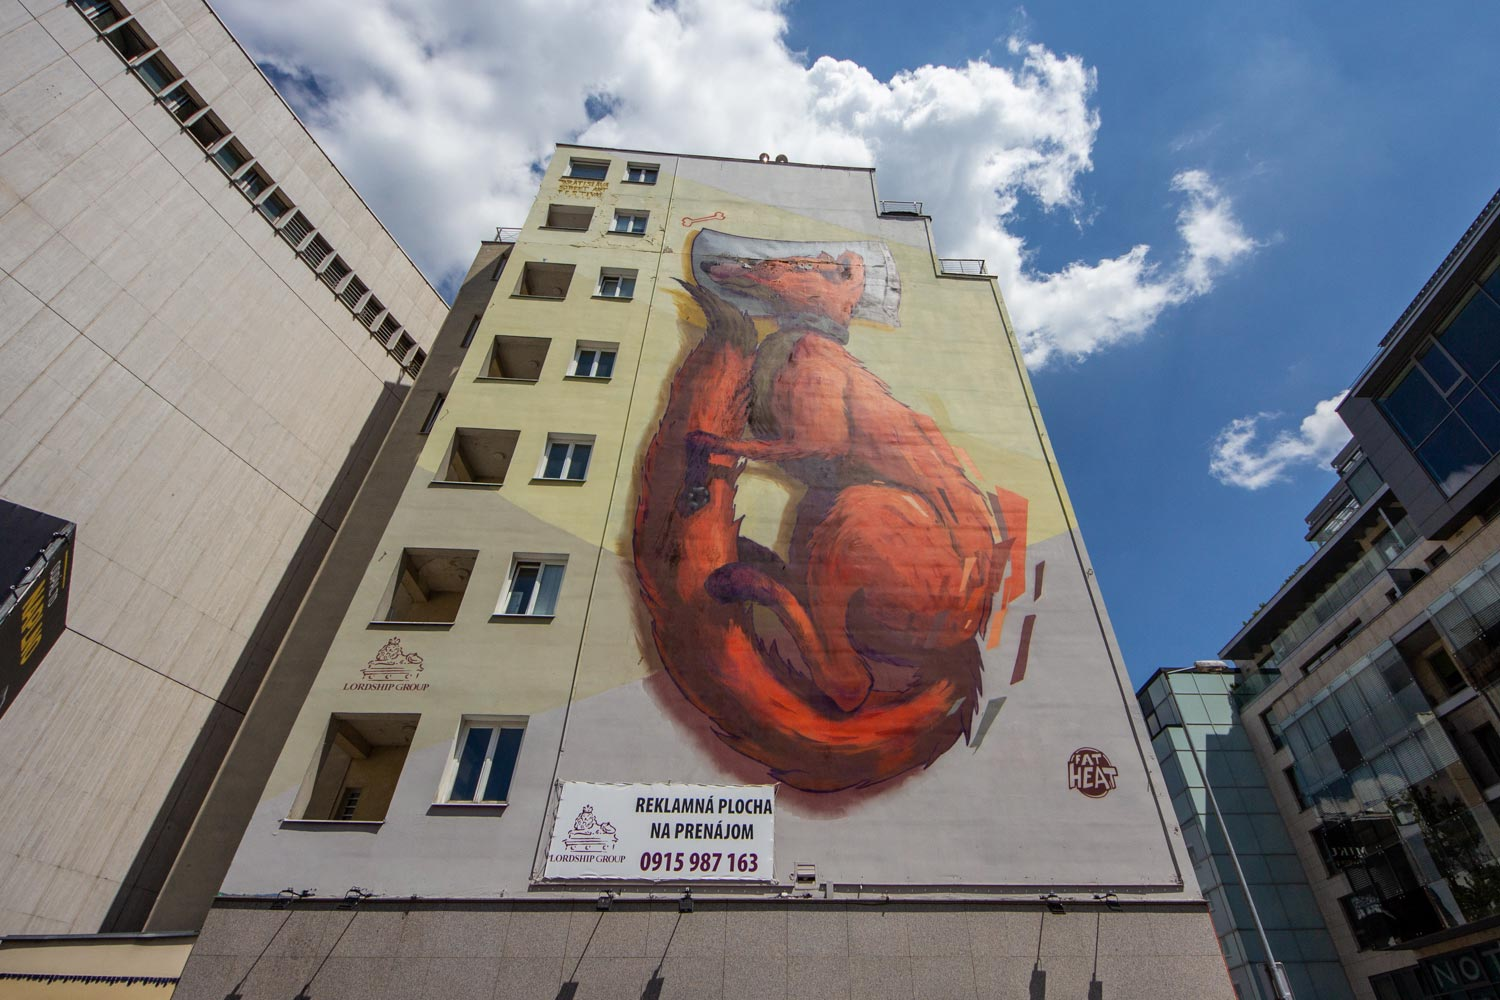 If you're doing bratislava on a budget, do a free walking tour and see all the murals, like this fox